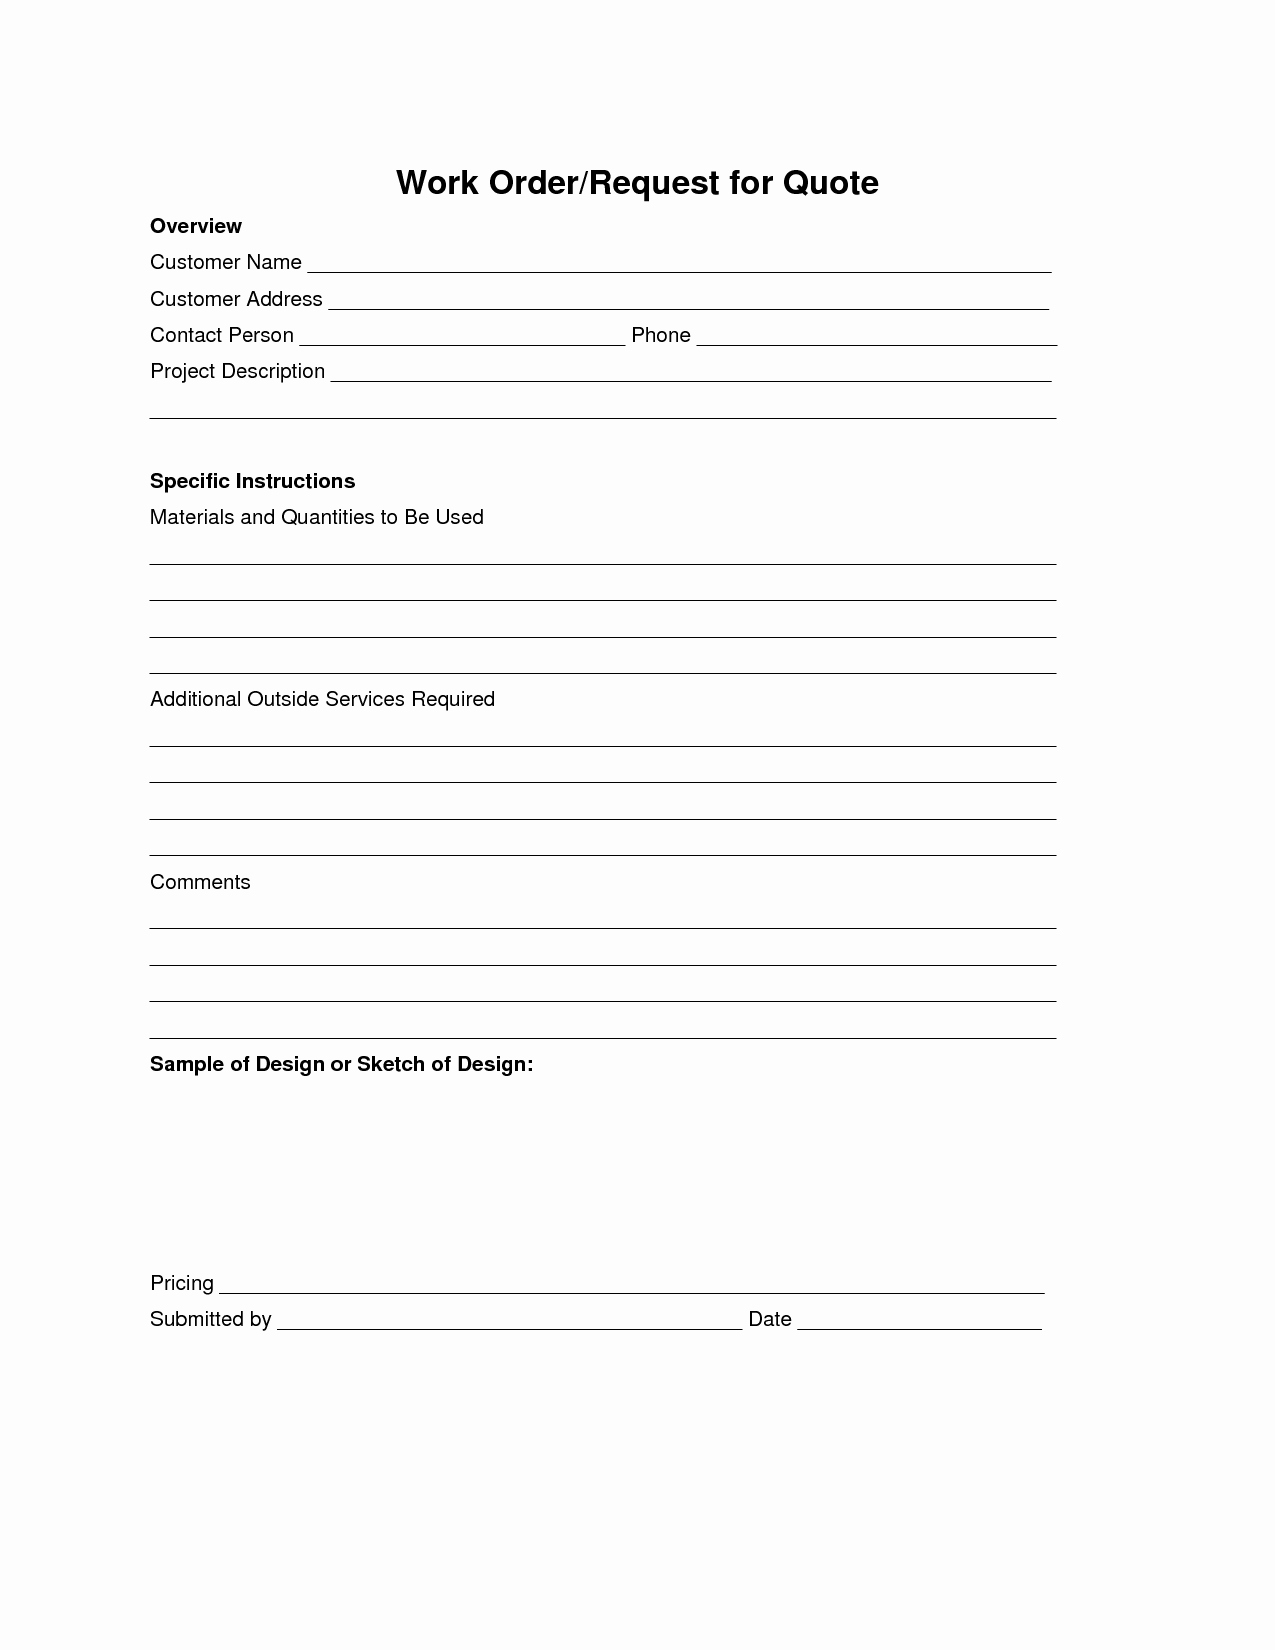 Work Request form Template New Best S Of Job Work order form Template Work order